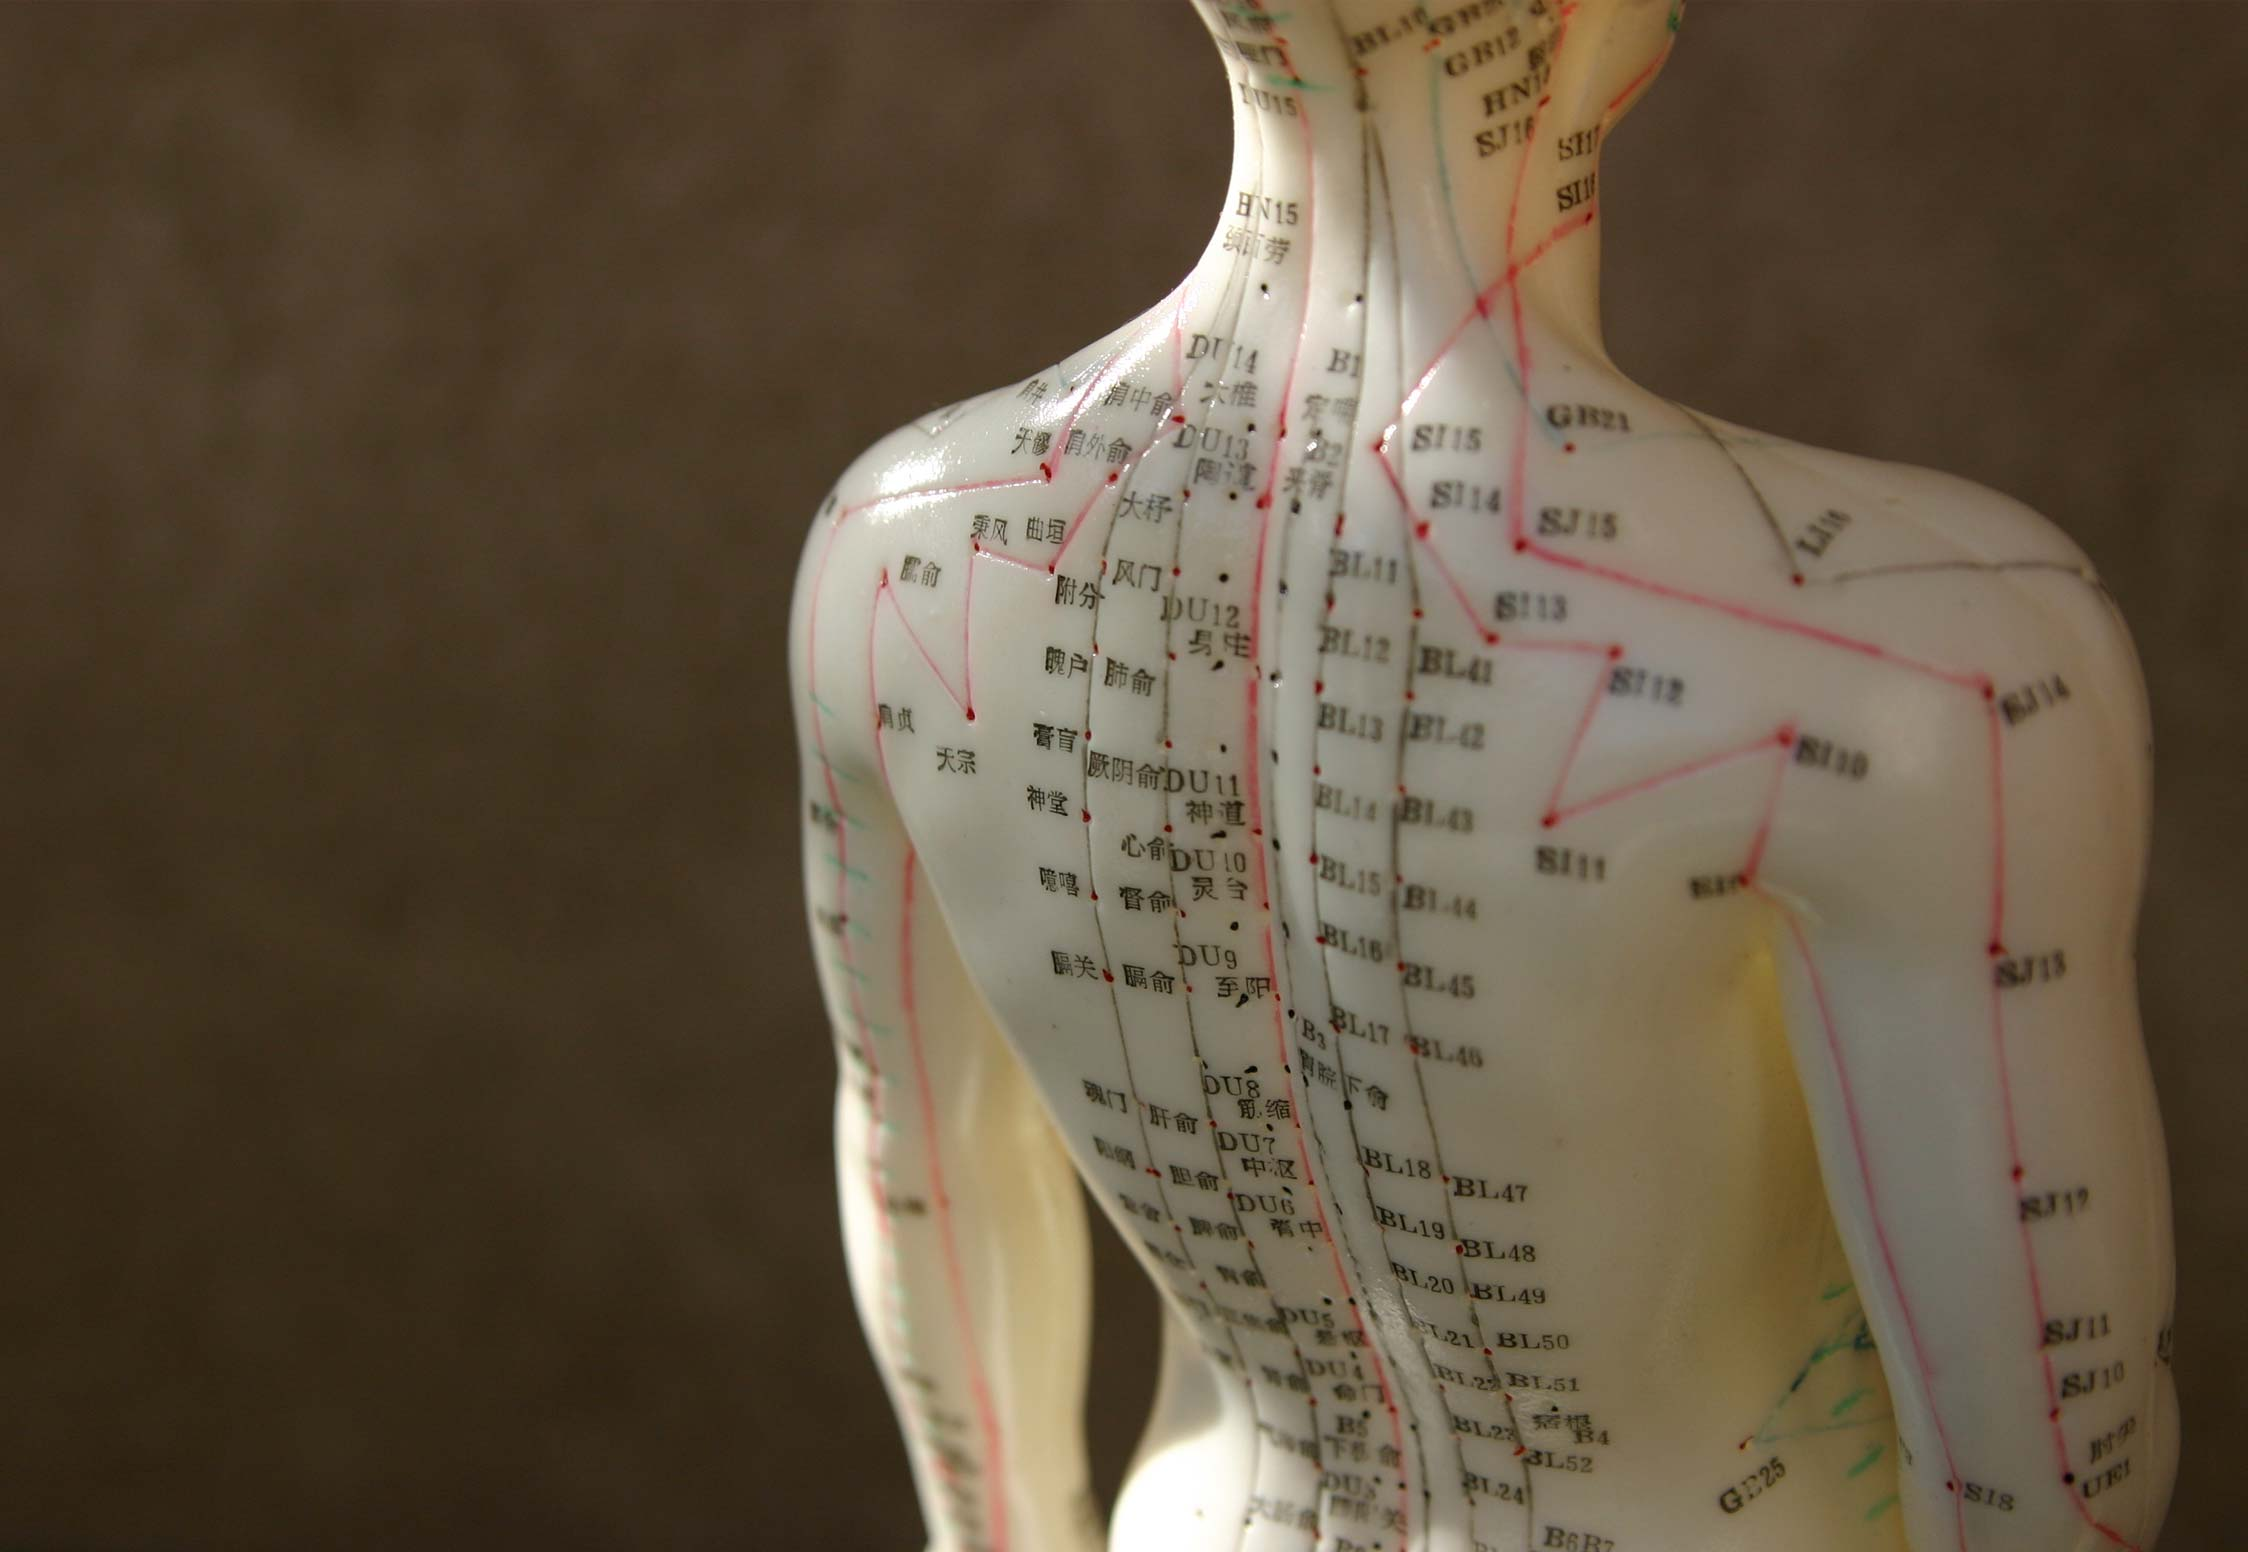 Image of Acupuncture points of the body